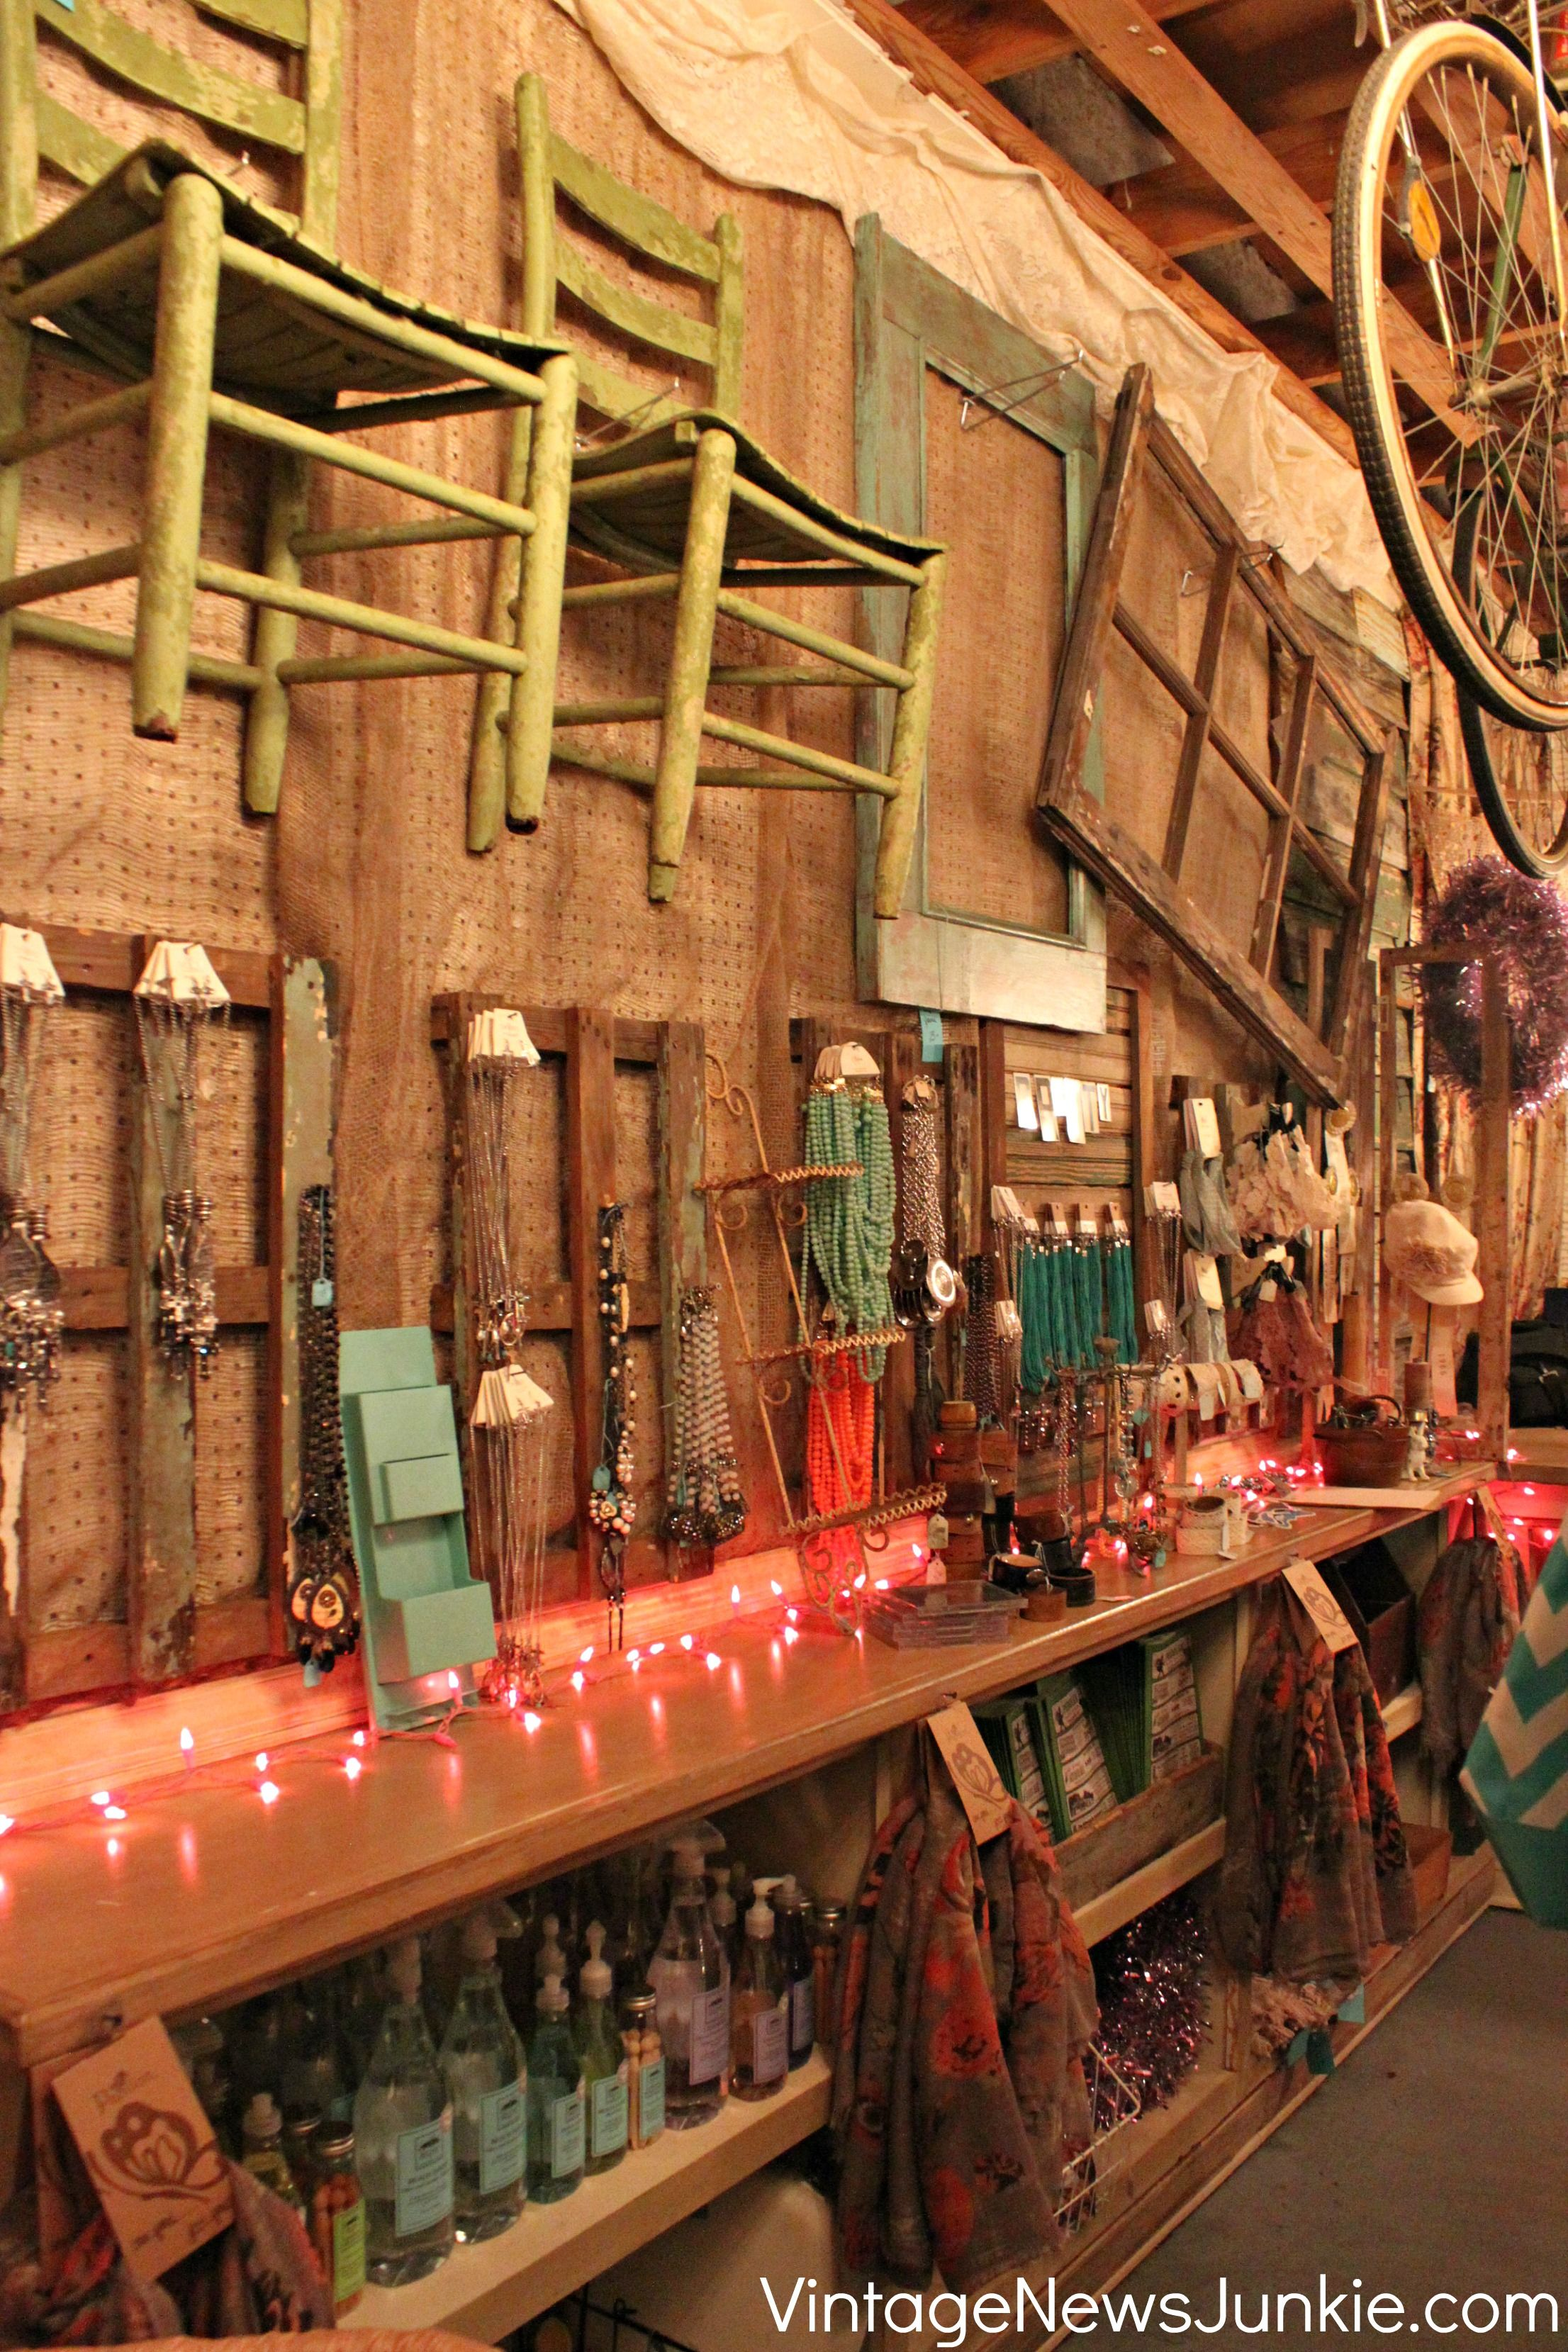 Dreamy Vintage Junk Shop Ideas For Decorating Your Own